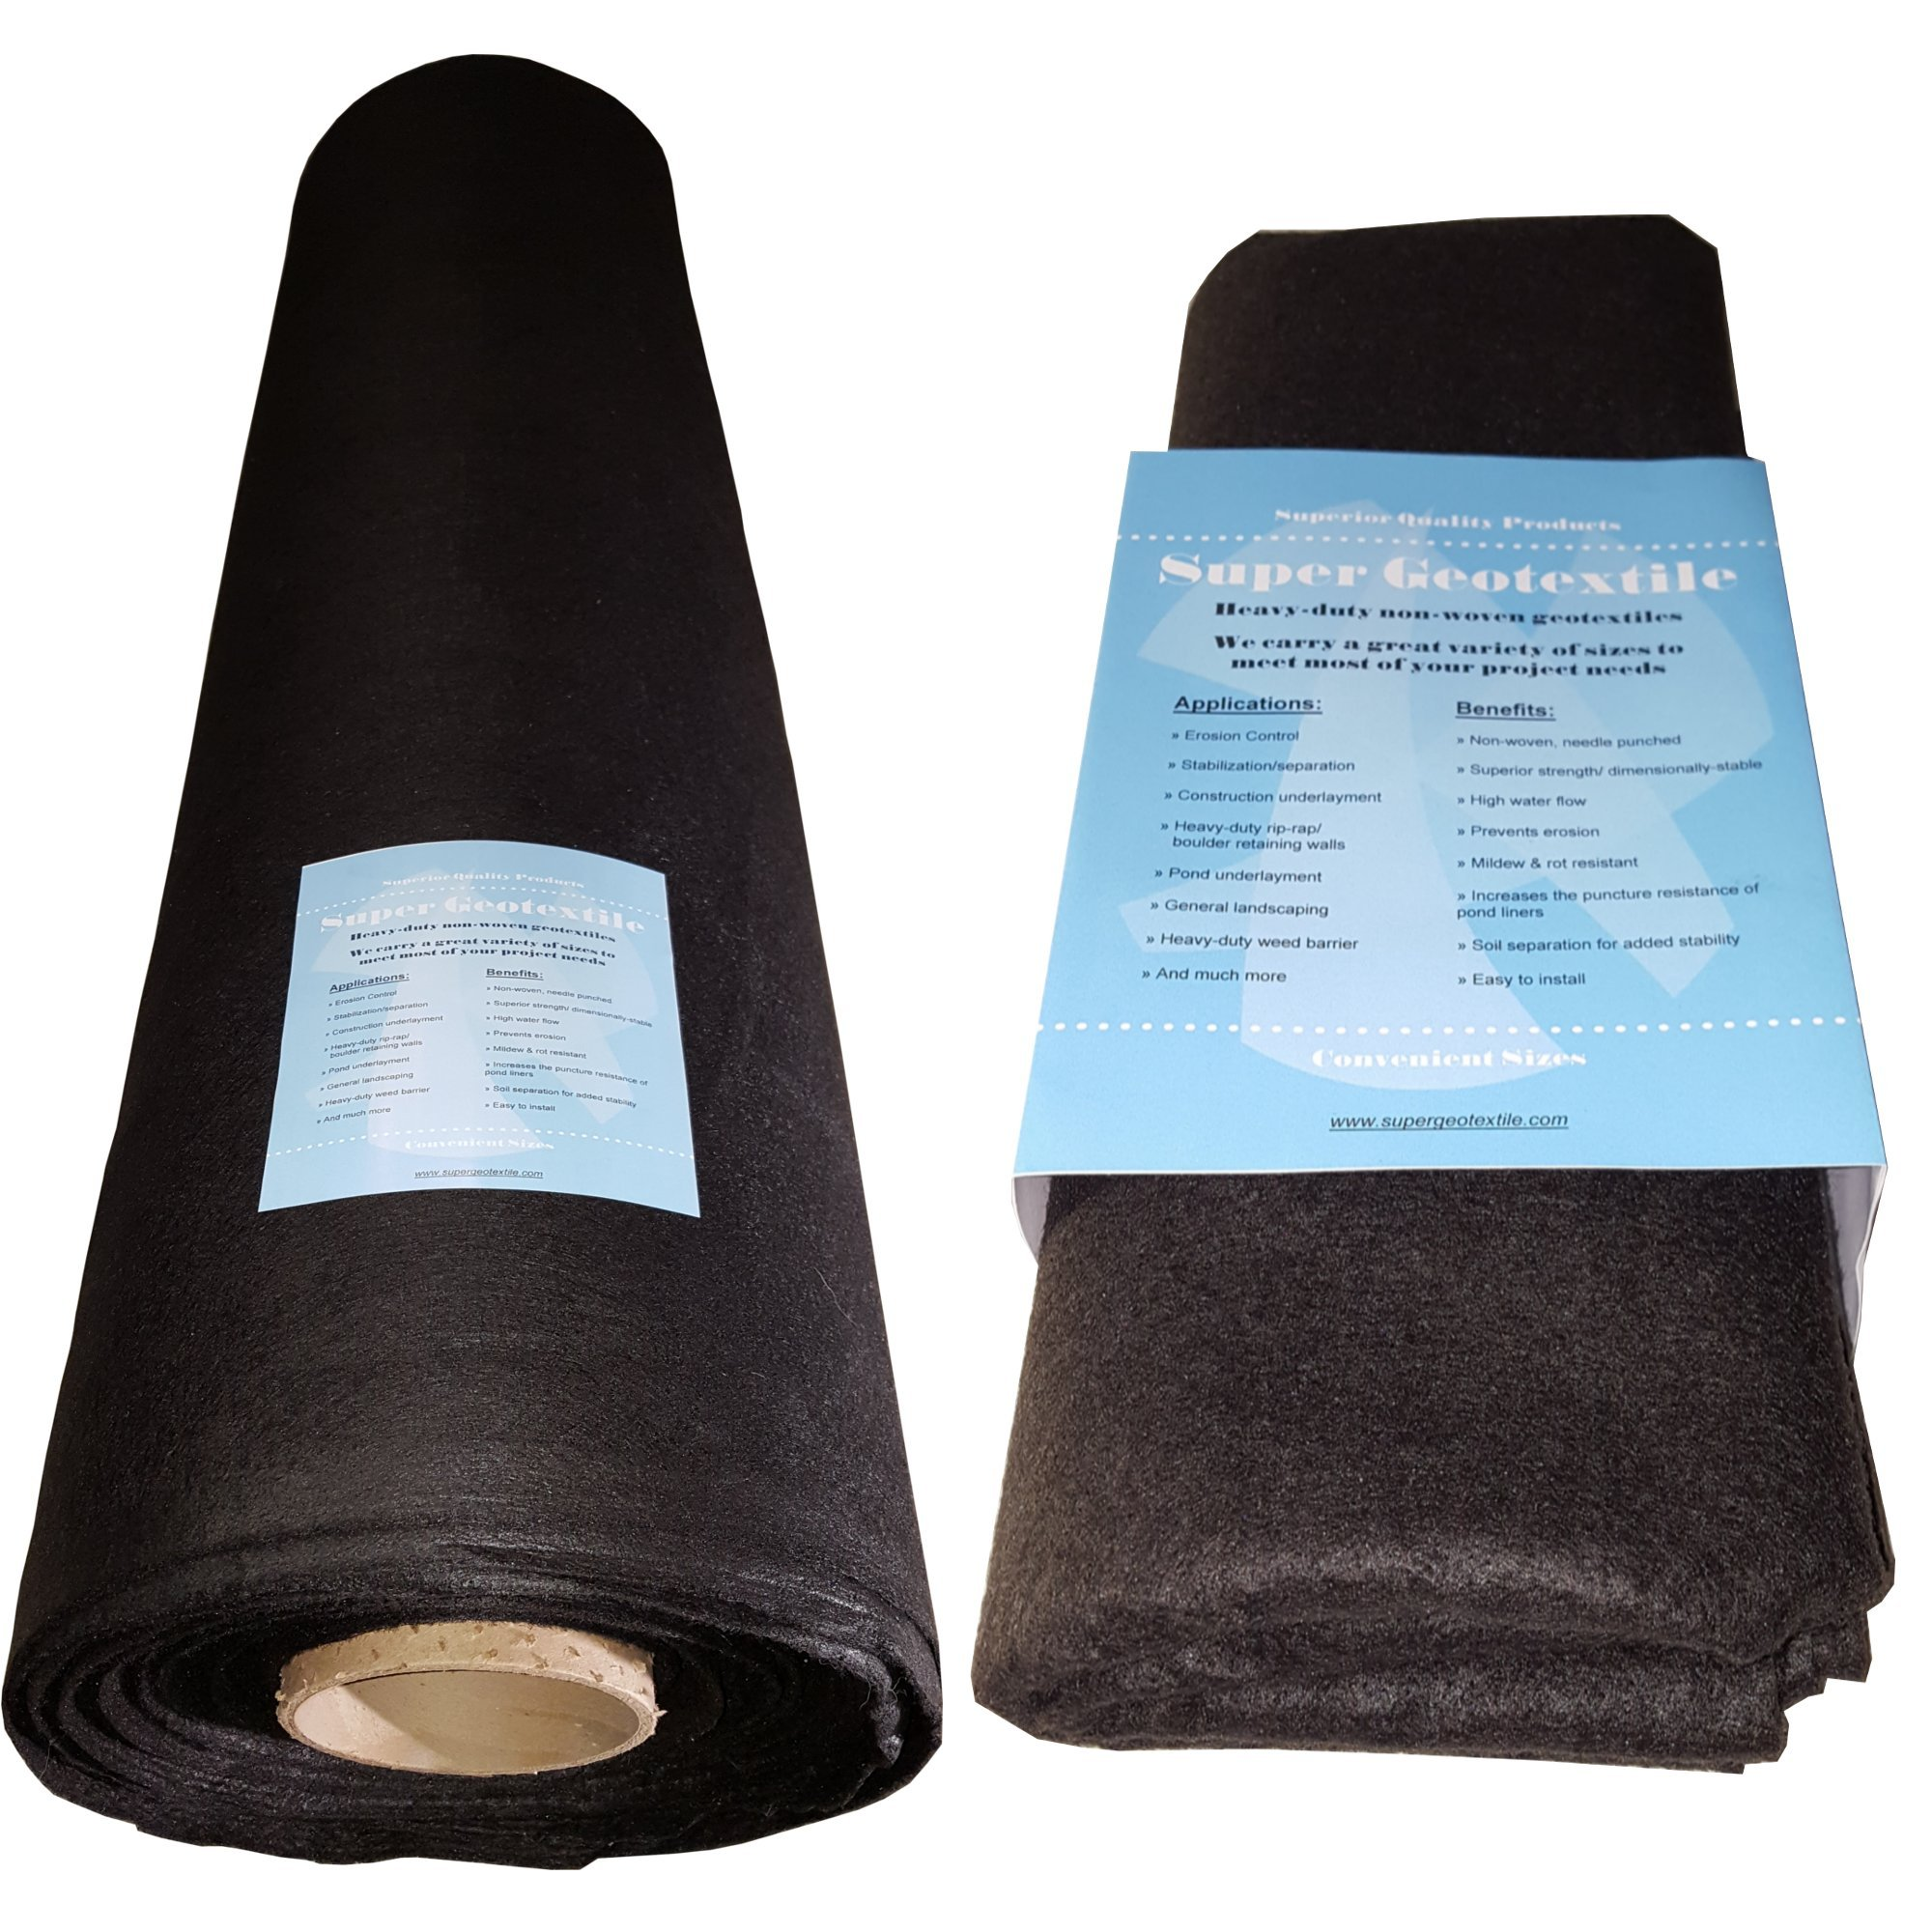 6oz Geotextile for Landscaping, Underlayment, Erosion Control, Construction Projects and more (3X100)